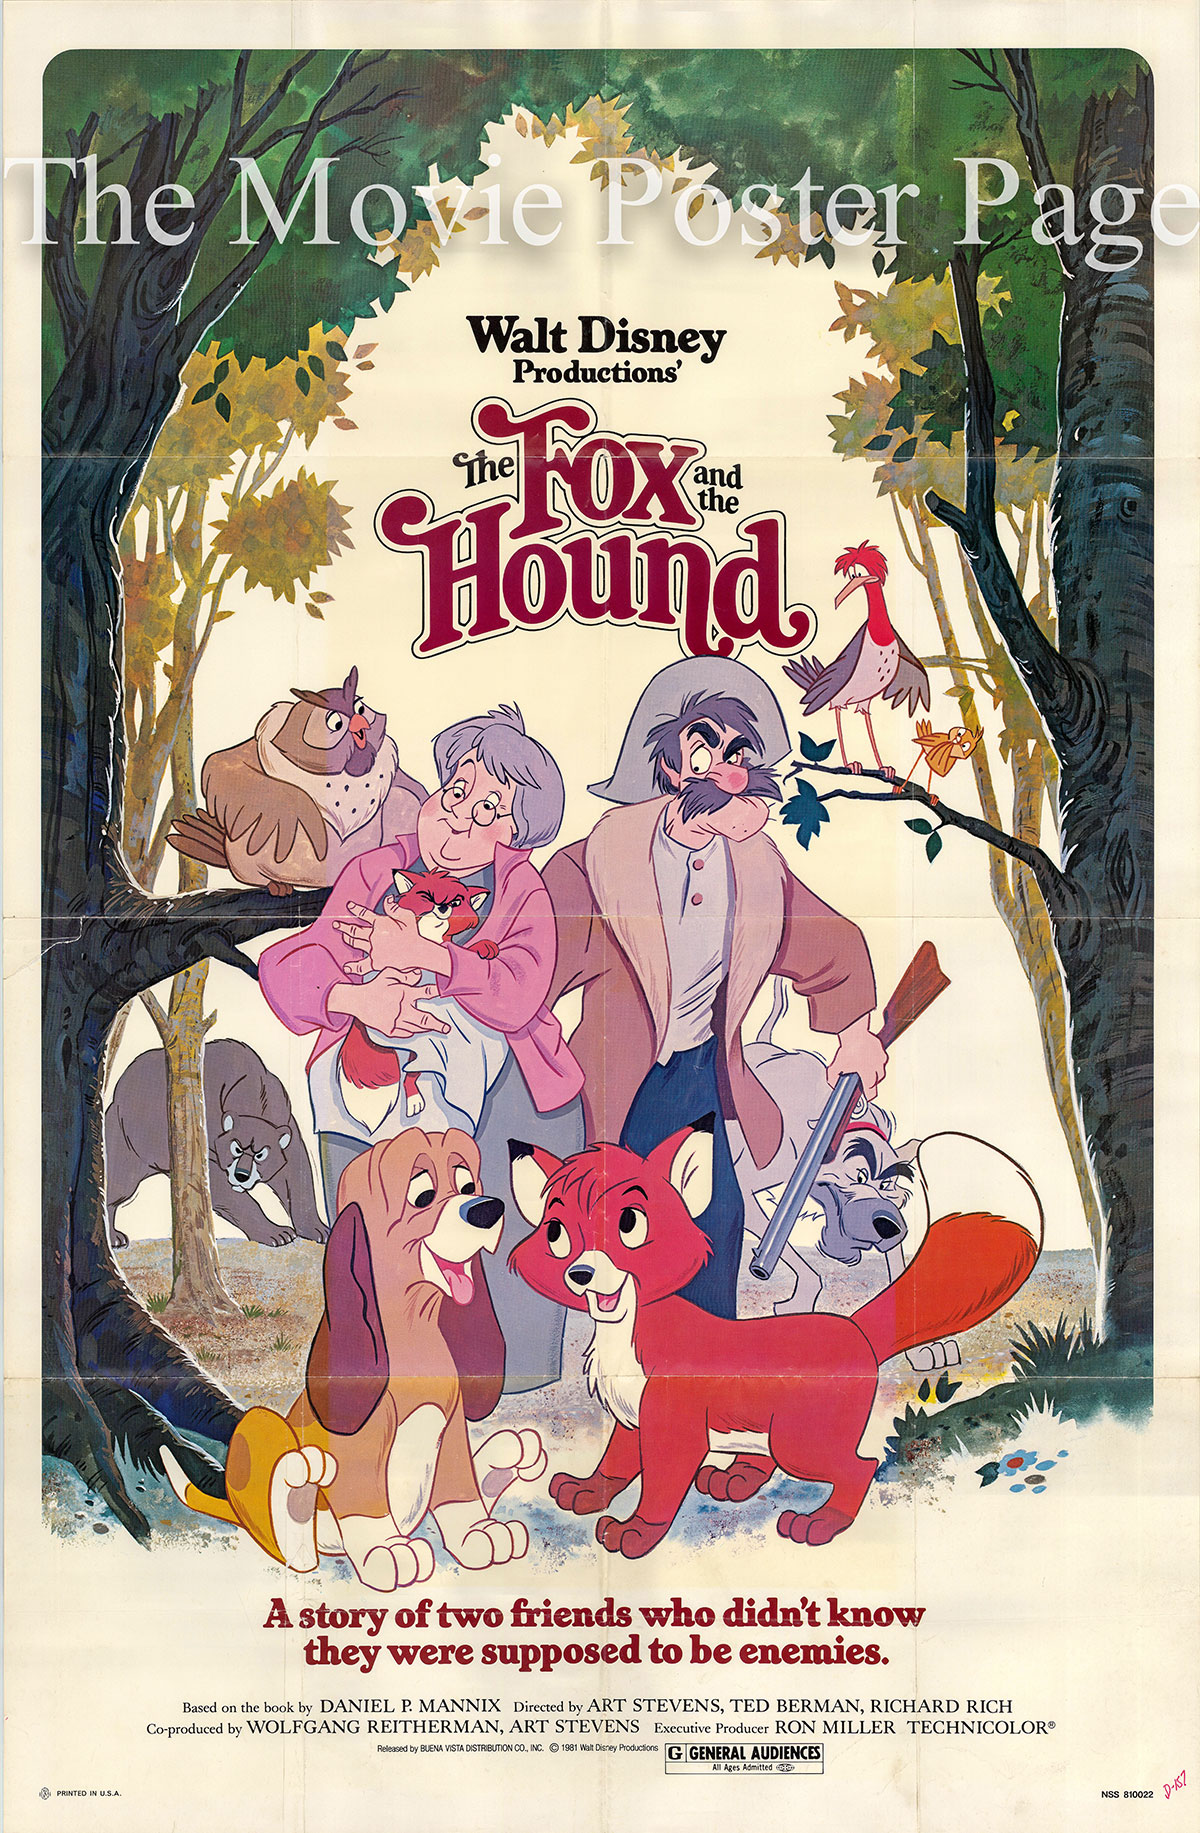 Pictured is a US one-sheet for the 1981 Walt Disney film The Fox and the Hound.